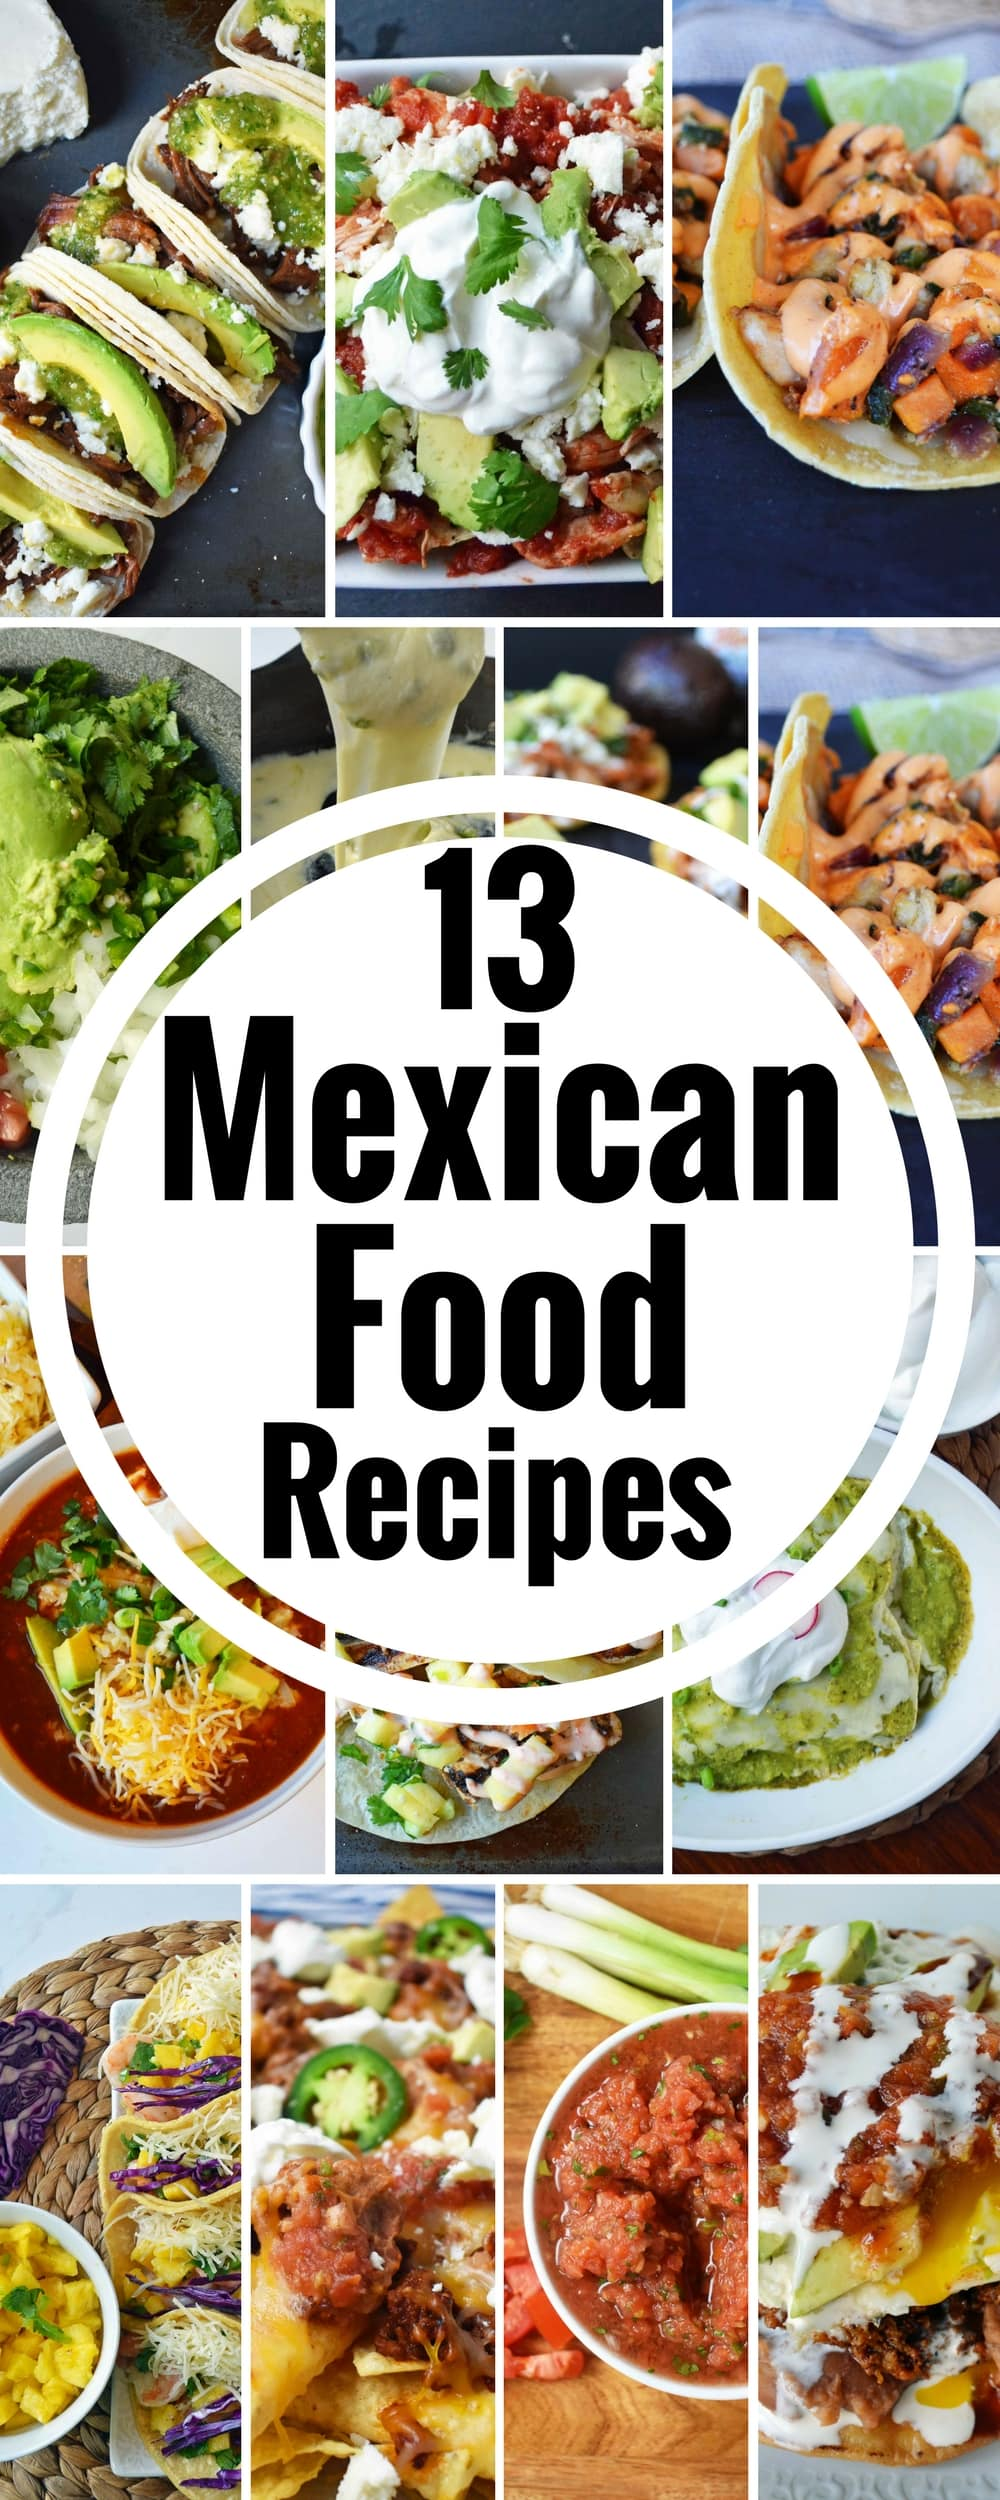 13 Cinco de Mayo Mexican Food Recipes all in one place. Chicken Enchiladas Verdes, Homemade Guacamole, Beef Barbacoa Tacos with Pepper Jack Queso, Jerk Chicken Tacos, Chorizo Tostadas, Chicken Poblano Sweet Potato Tacos, Honey Lime Shrimp Tacos, Chicken Chilaquiles, Texas Chili, Spicy Beef Nachos, Slow Cooker Beef Barbacoa, Restaurant Style Salsa, Slow Cooker Chicken Tinga Tostadas. www.modernhoney.com